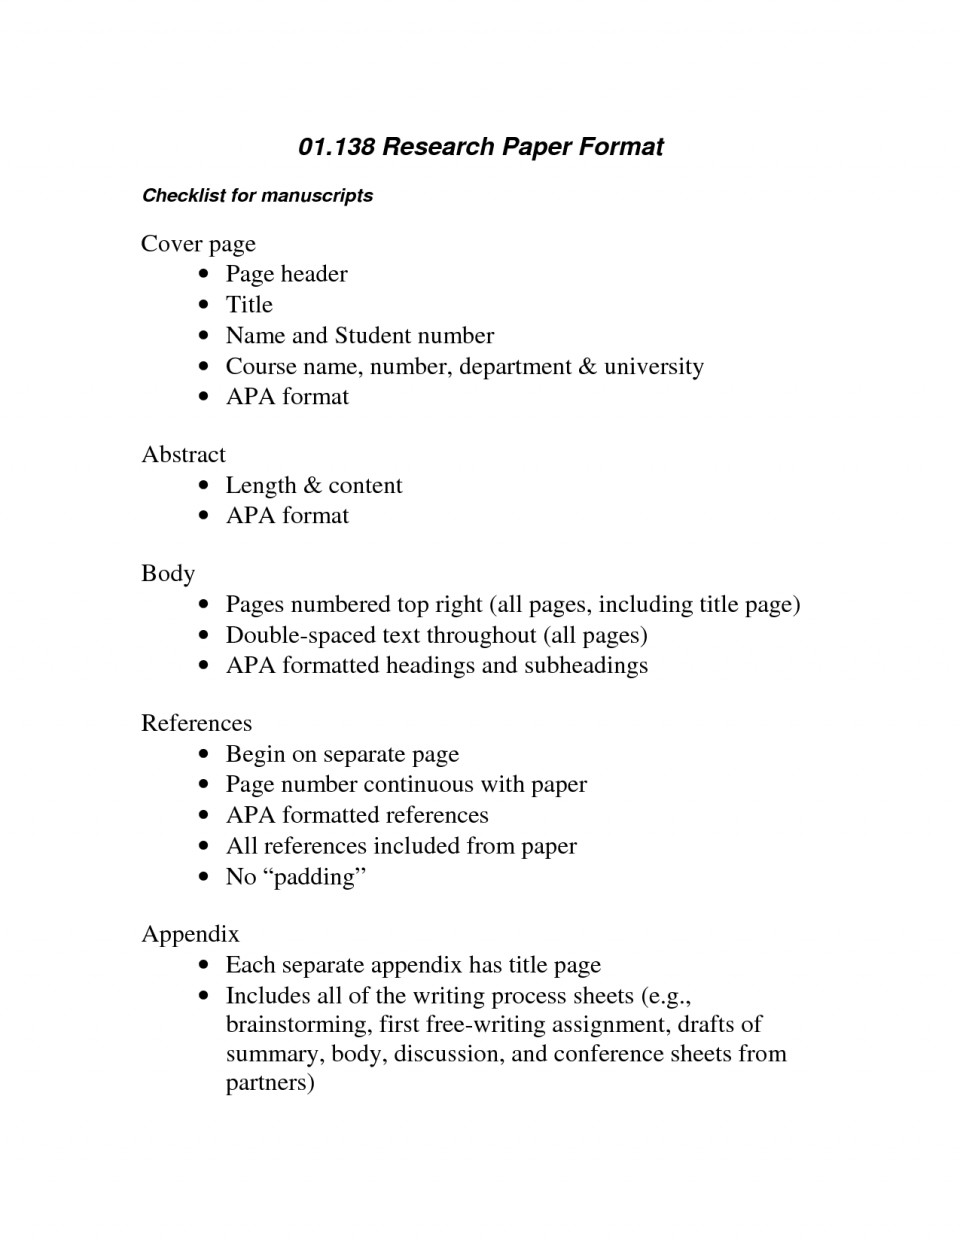 004 Proper Order Of Sections Research Paper In Apa Marvelous A Format 960